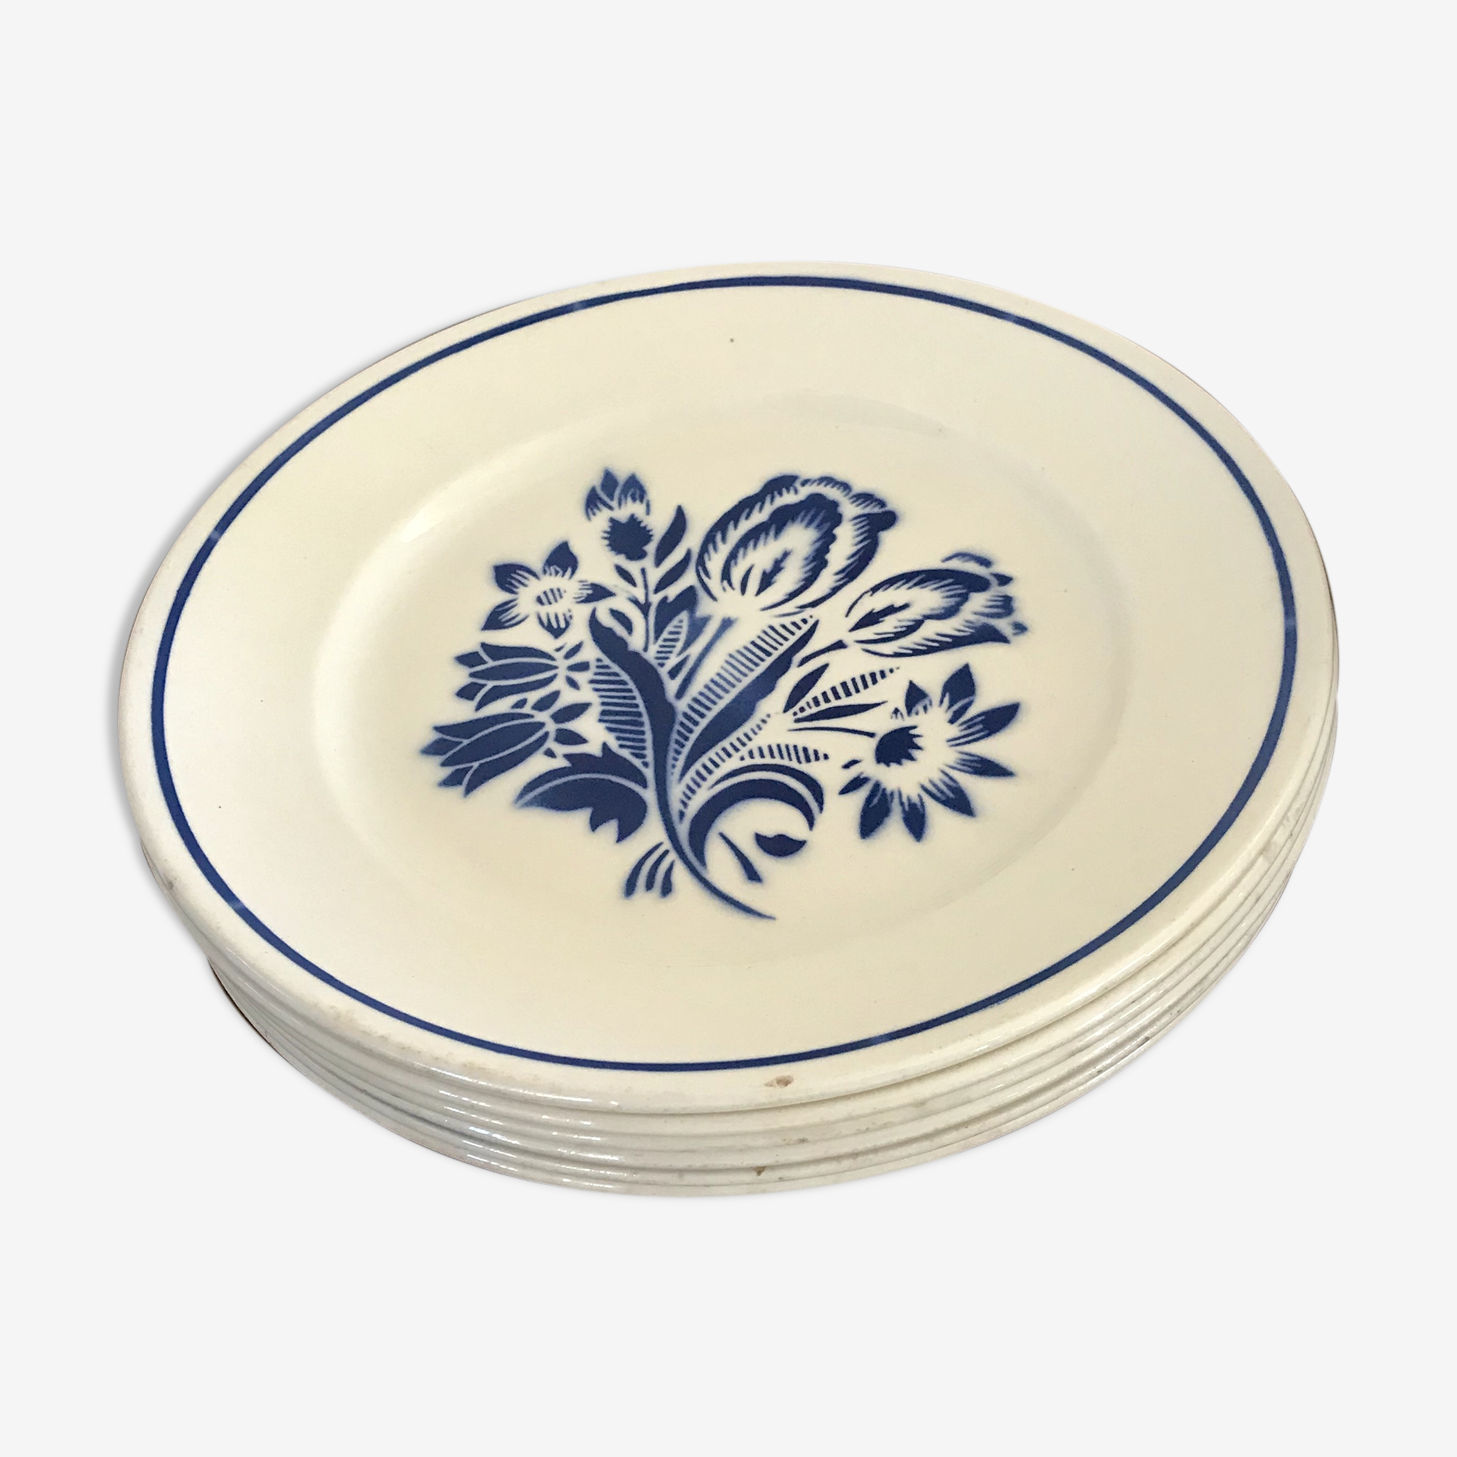 Suites of 6 plates and Bowl Badonviller